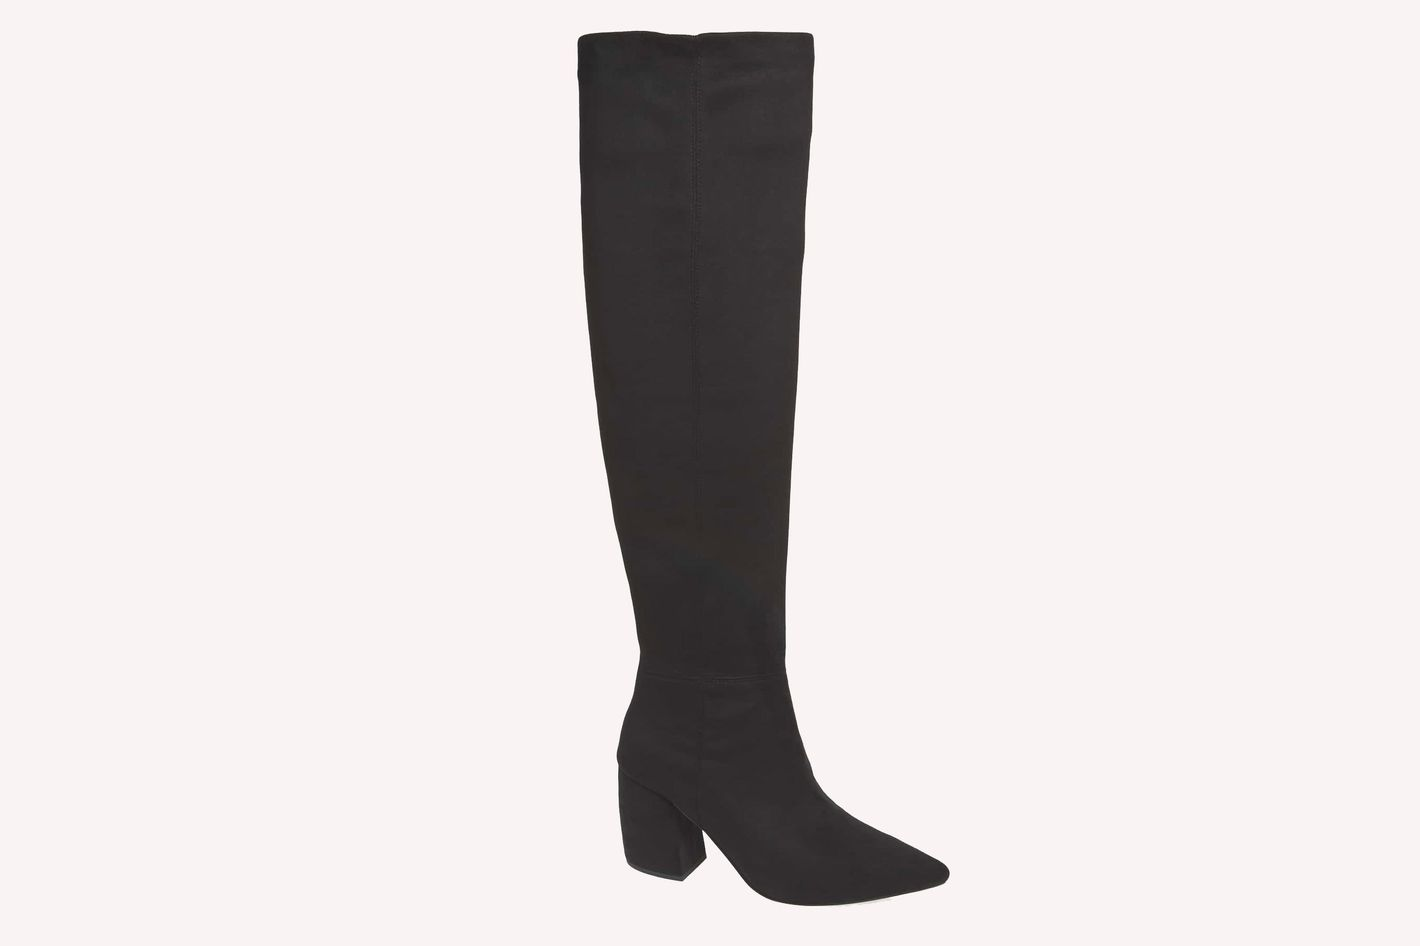 Jeffrey Campbell Final Slouch Over the Knee Boot